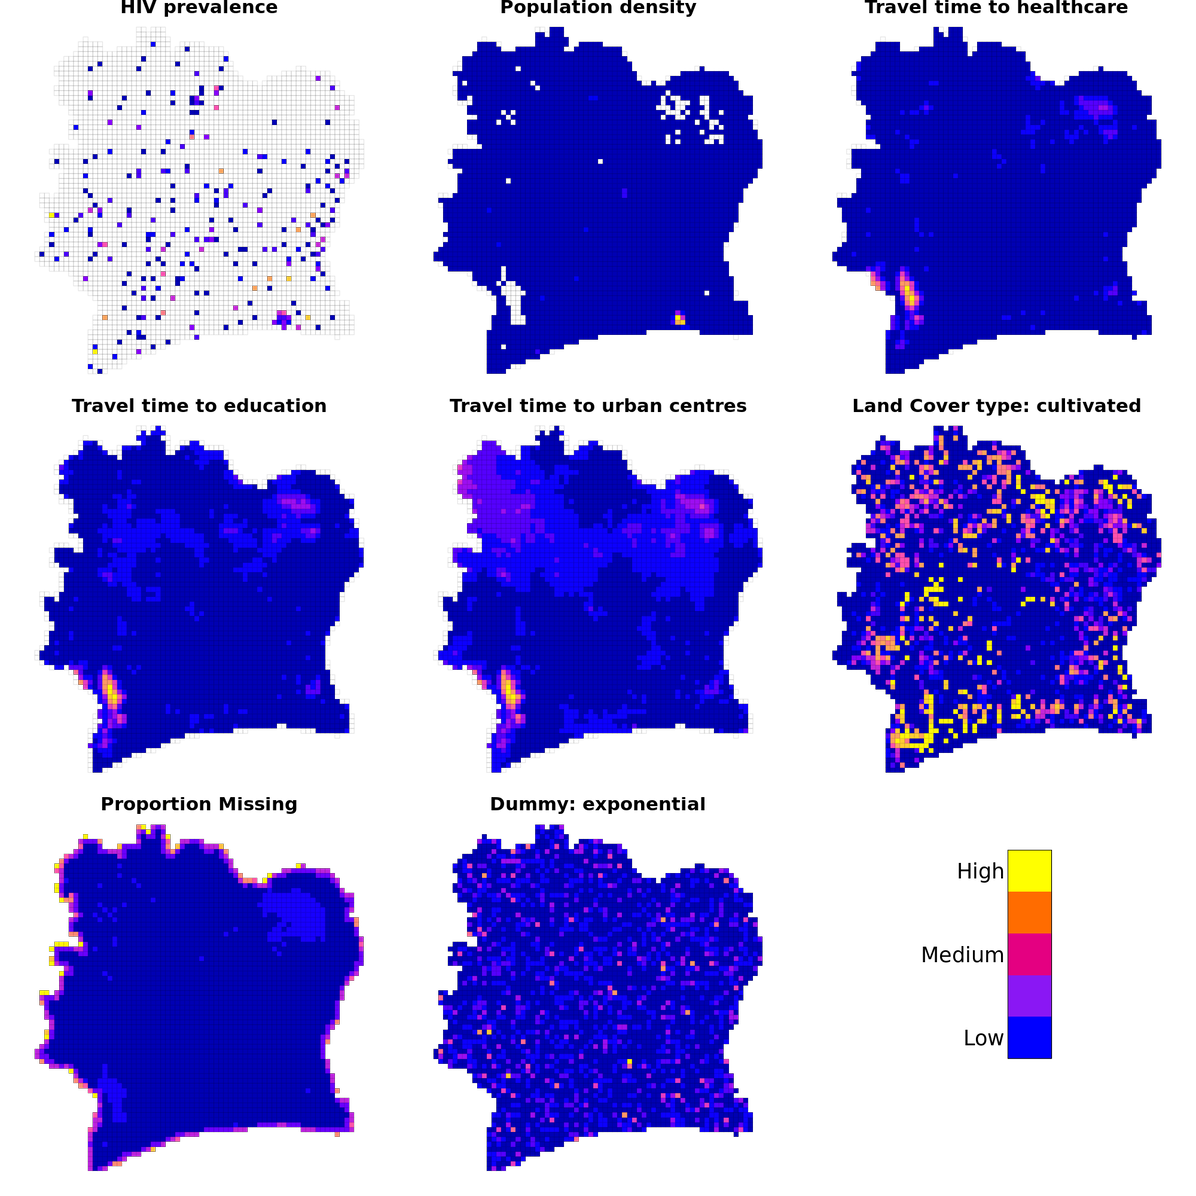 A series of heatmaps using the uniform spatial grid for Côte d'Ivoire. Each heatmap illustrates how a particular variable (For example, HIV prevalence or access to healthcare varies in space). Table 1 describes the datasets used to generate the variables shown.